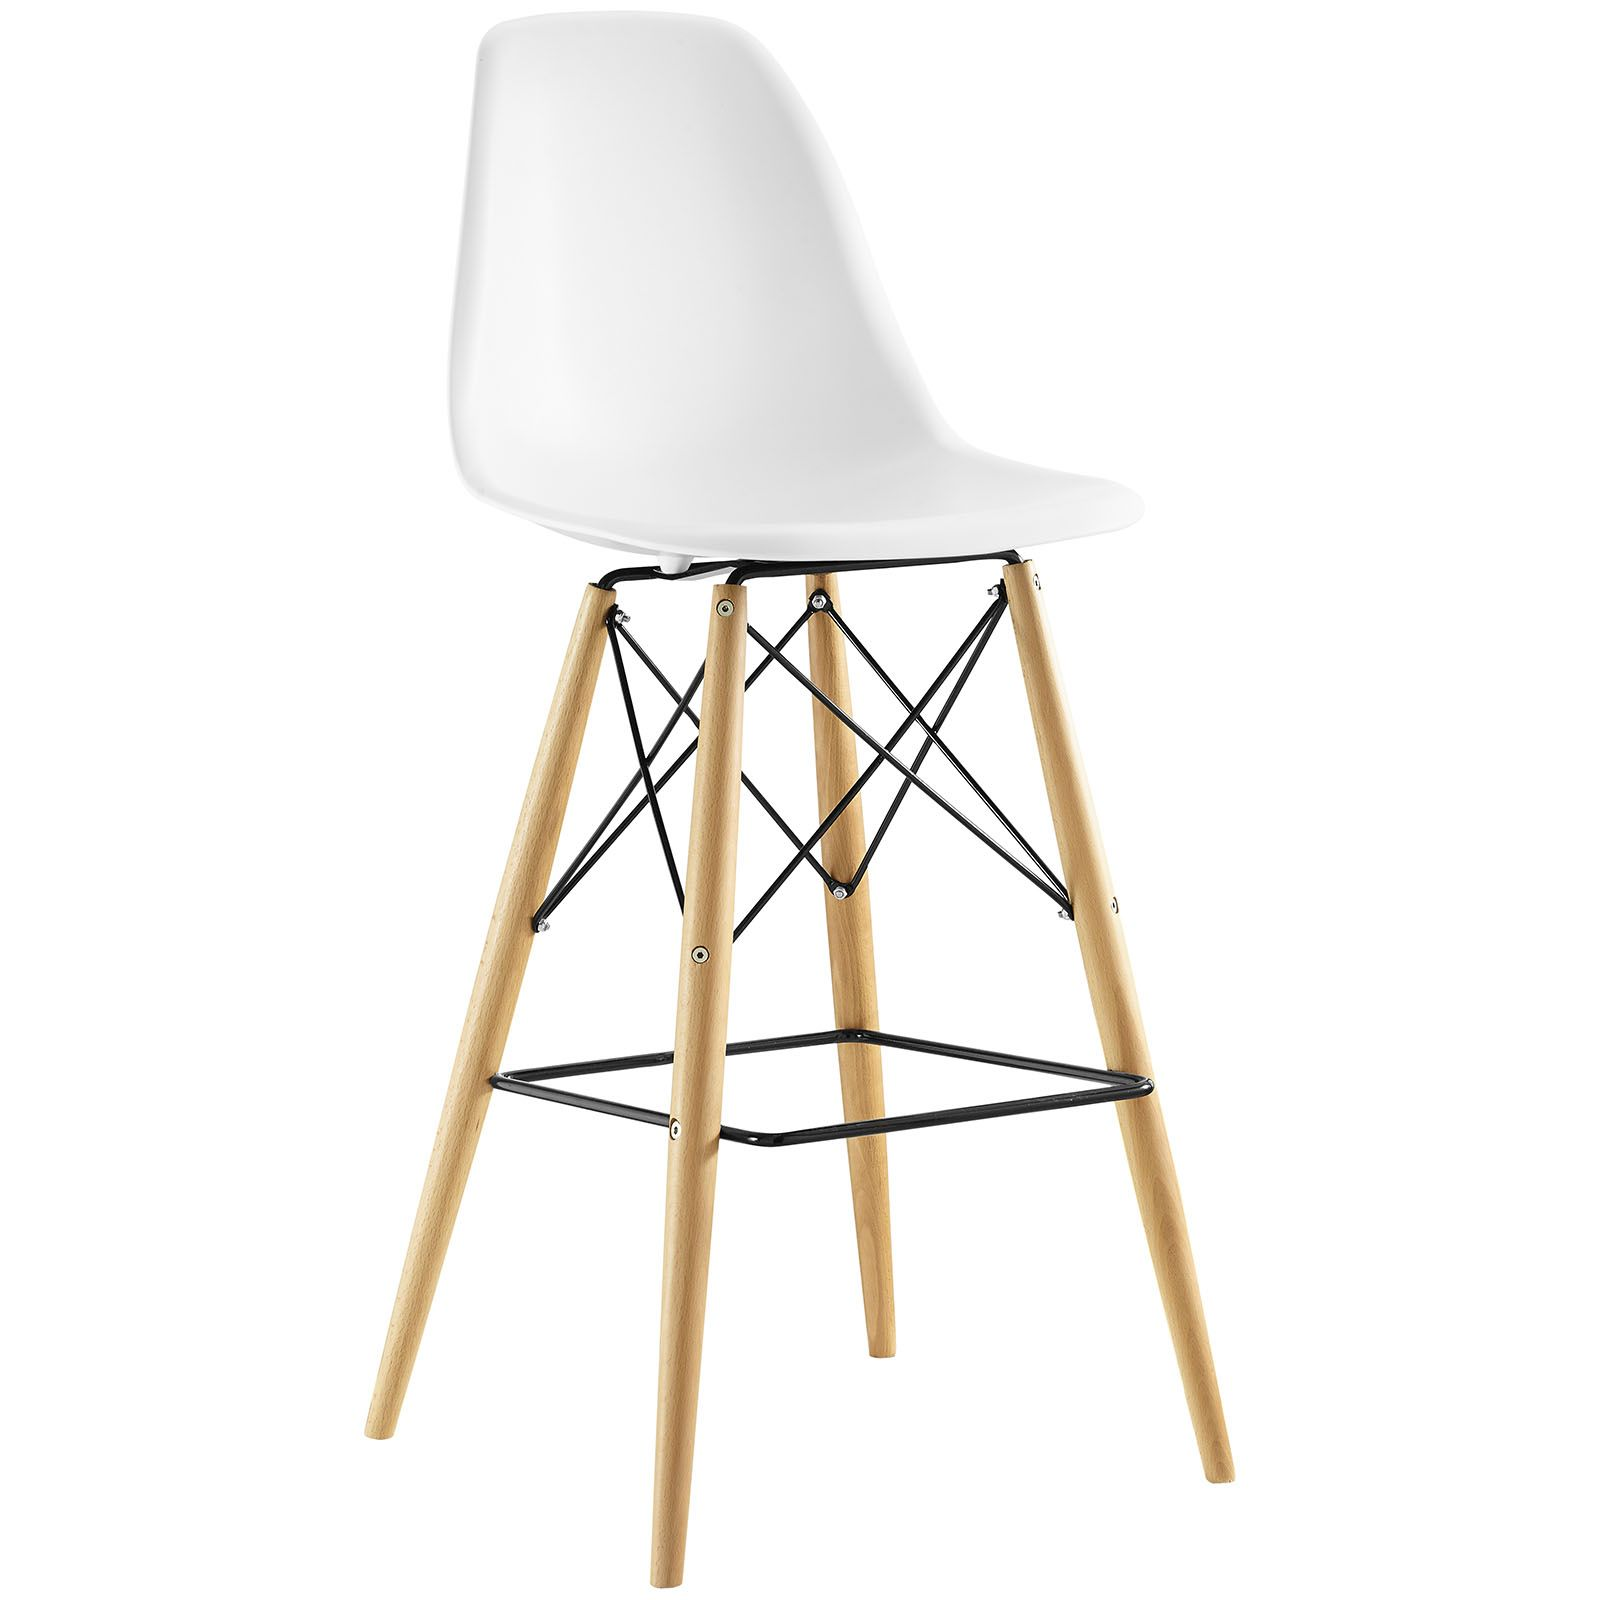 Mid Century Modern Furniture Rentals In Los Angeles County, Eames Barstool  Rentals! We